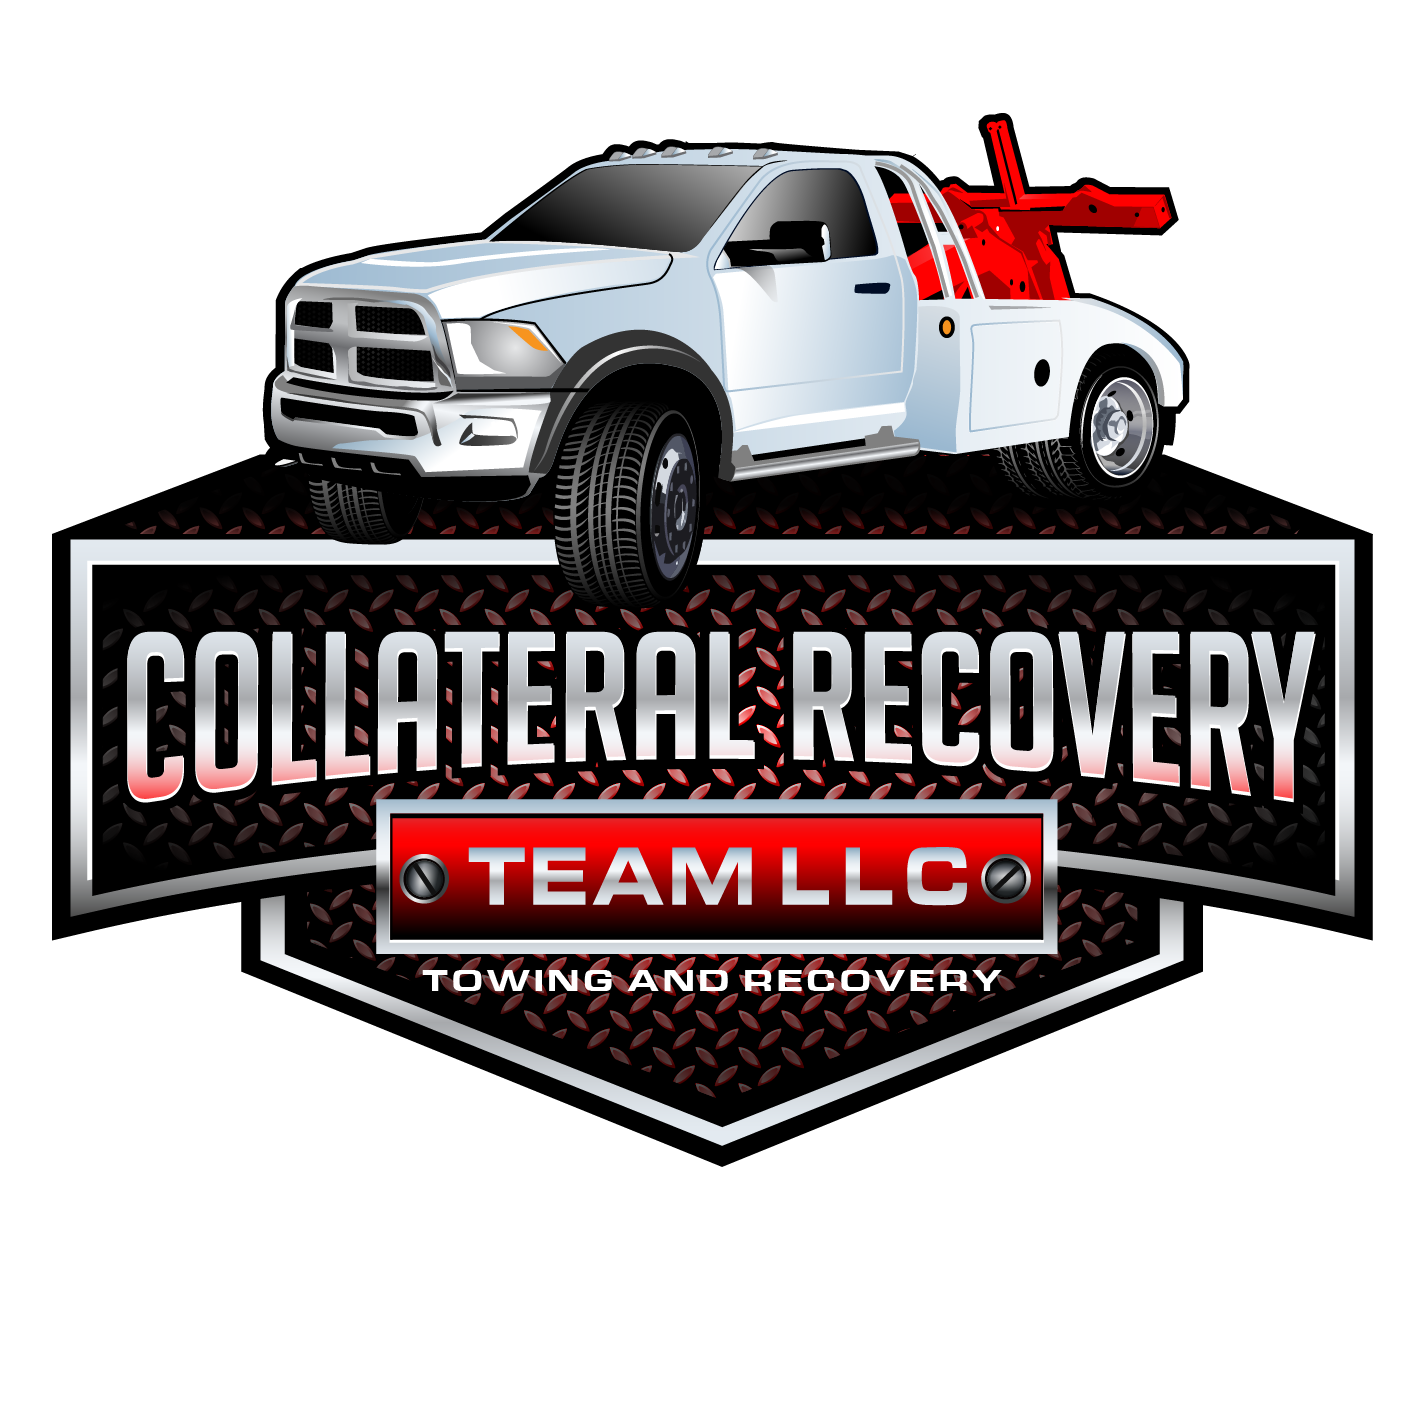 Collateral Recovery Team